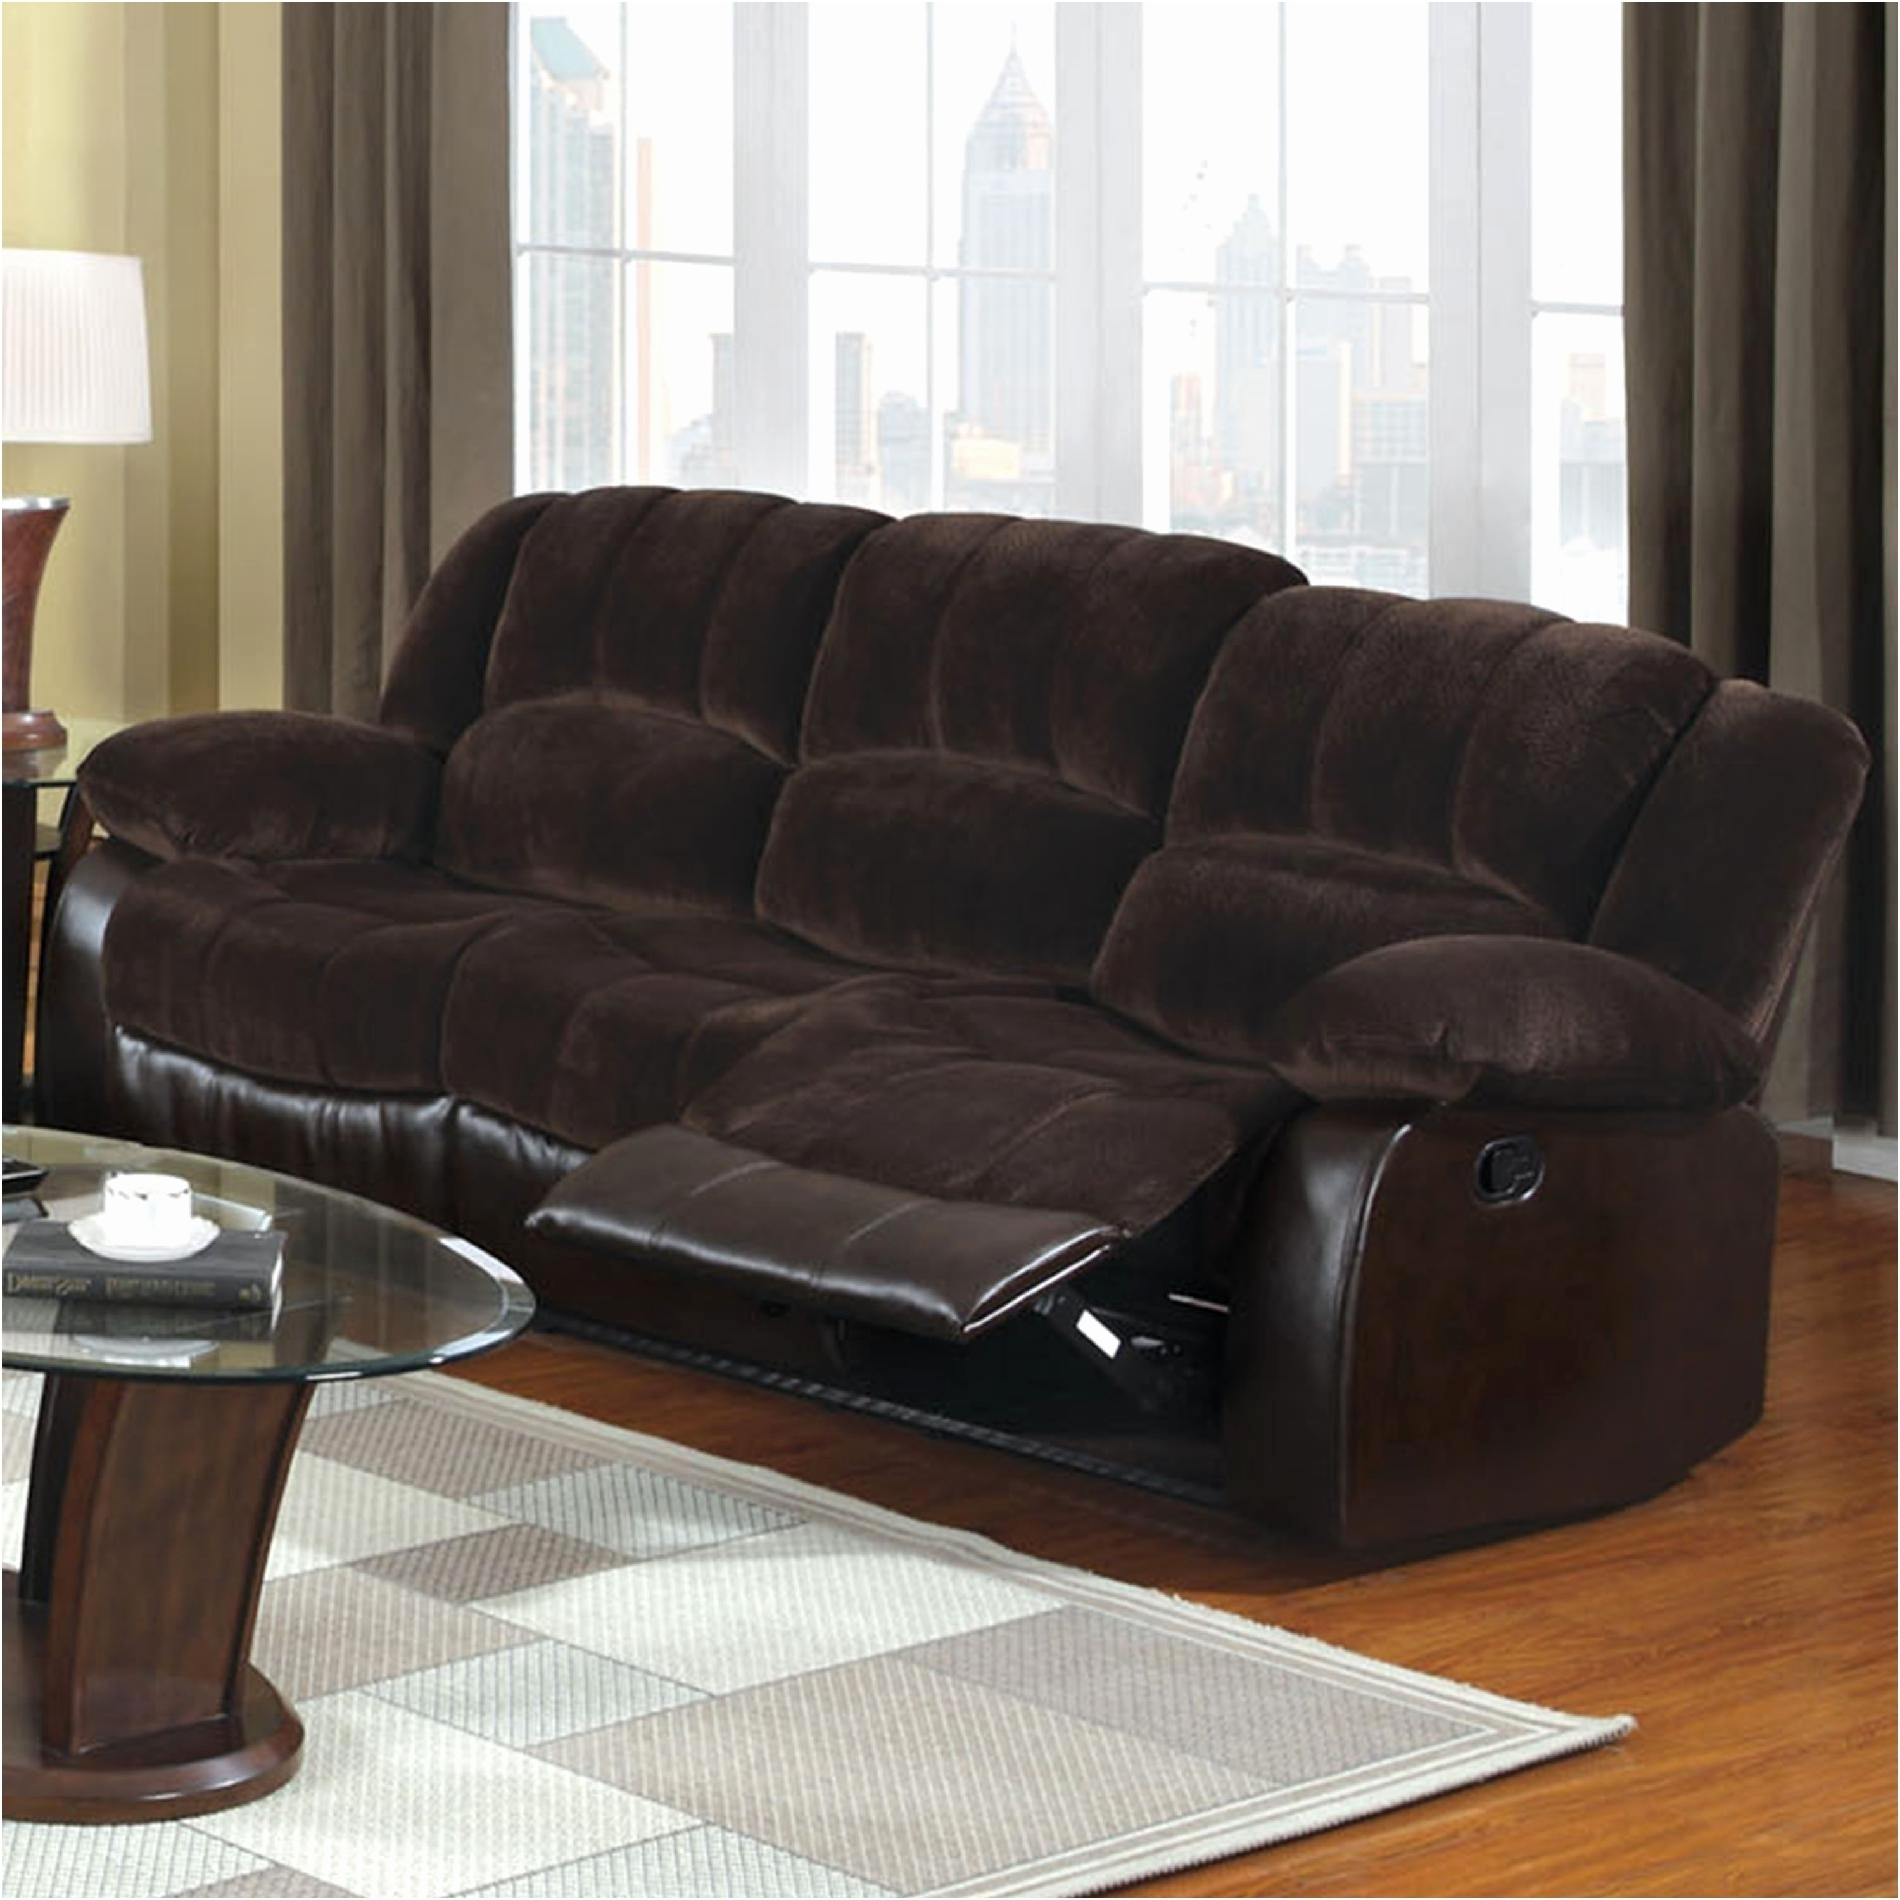 Sectional Sofas At Sears For 2018 Fresh Sears Leather Sofa New – Intuisiblog (View 11 of 20)